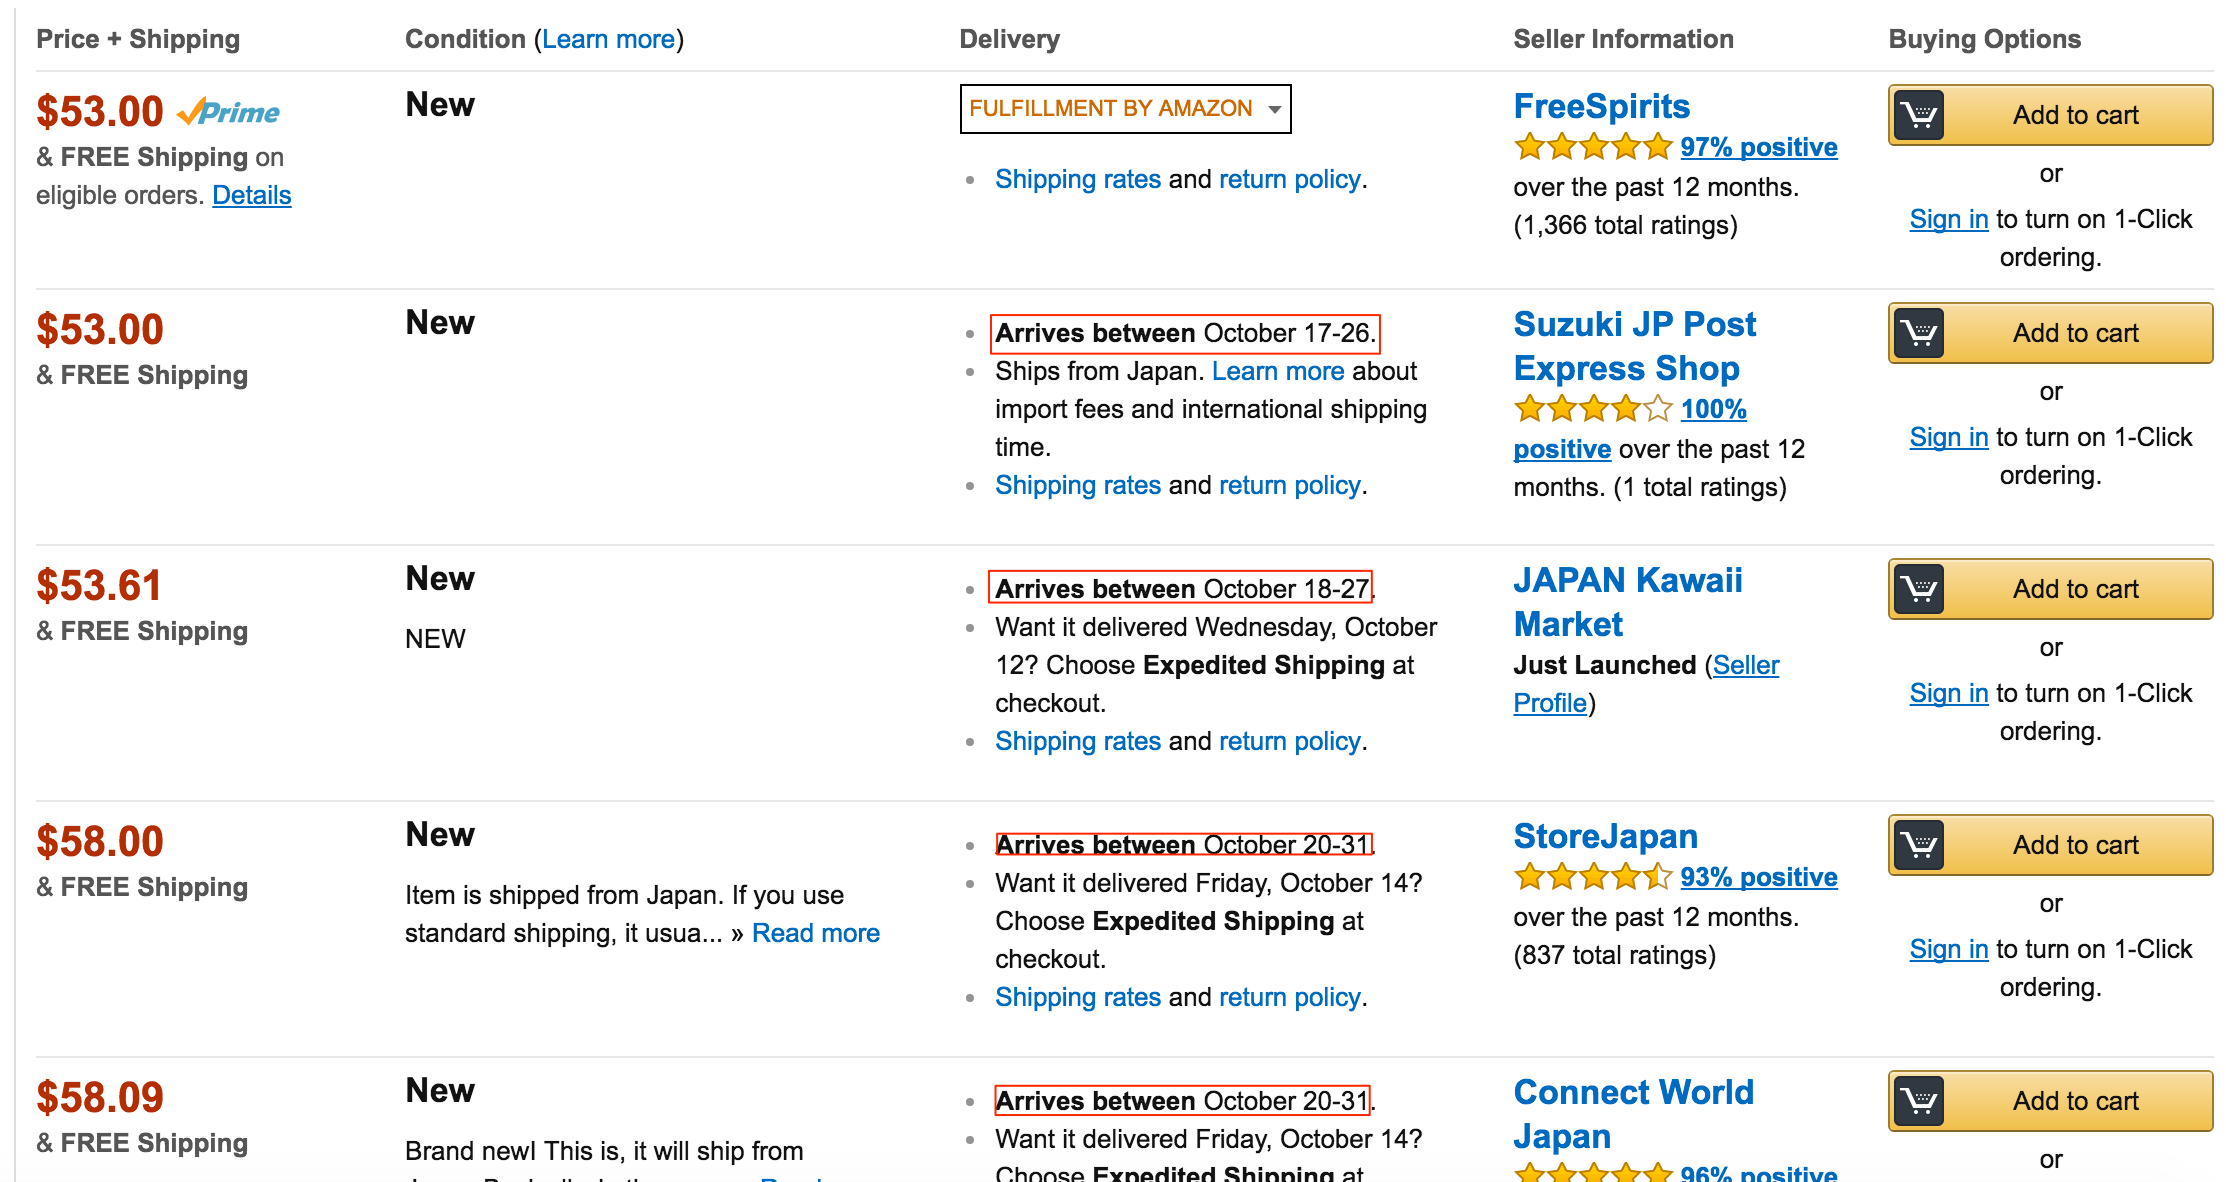 amazon_com__buying_choices__craft_design_technology_scissors_-_black_from_japan_-_made_in_japan